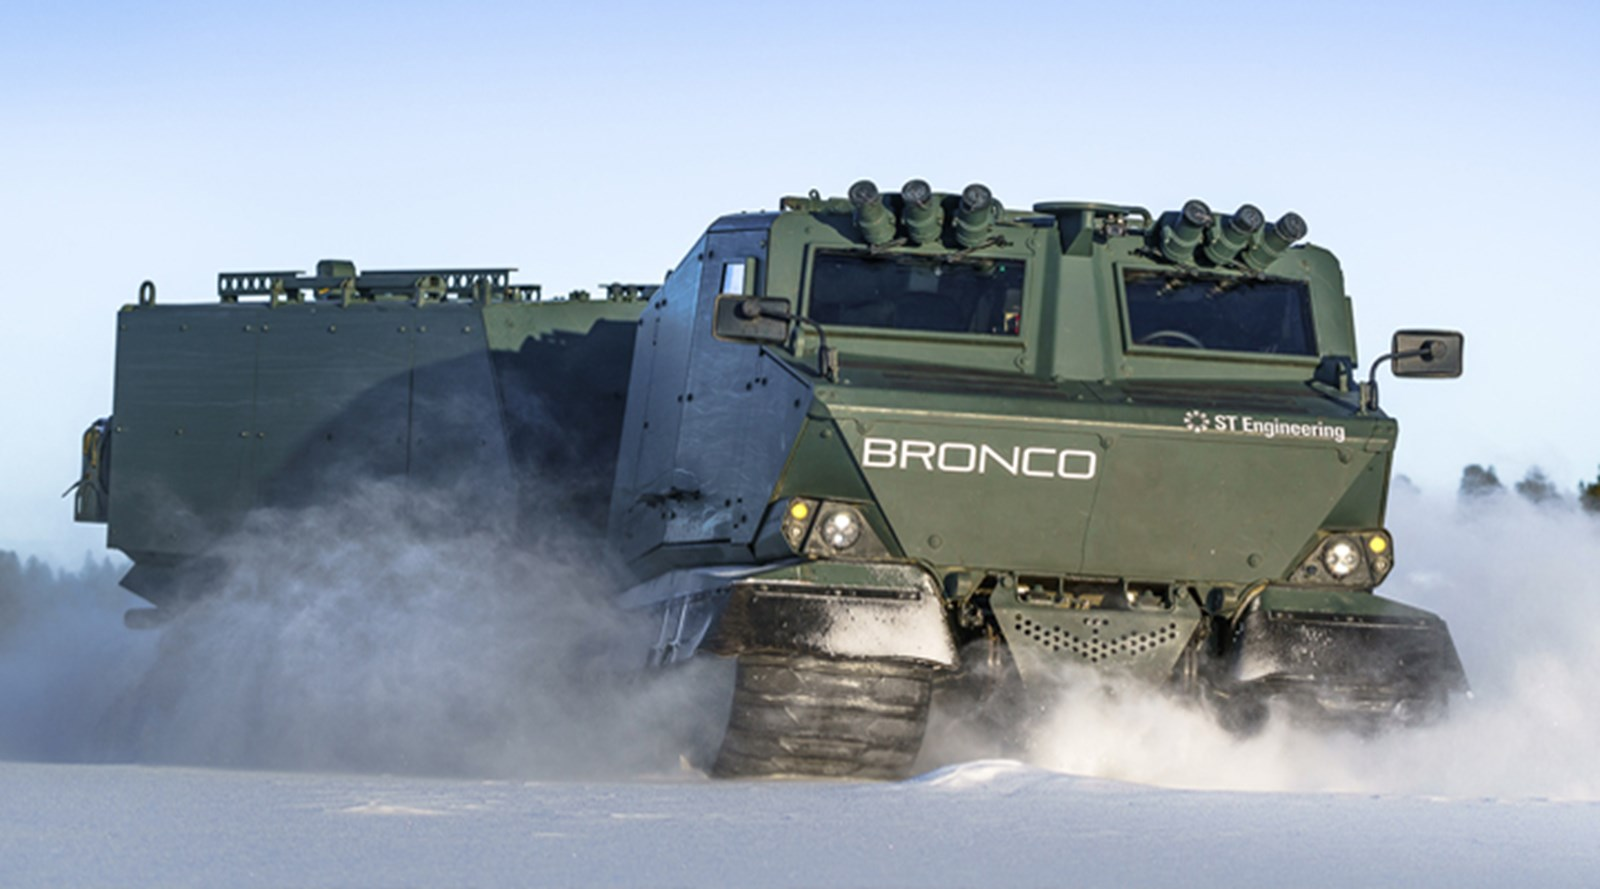 Bronco All Terrain Tracked Carrier | ST Engineering